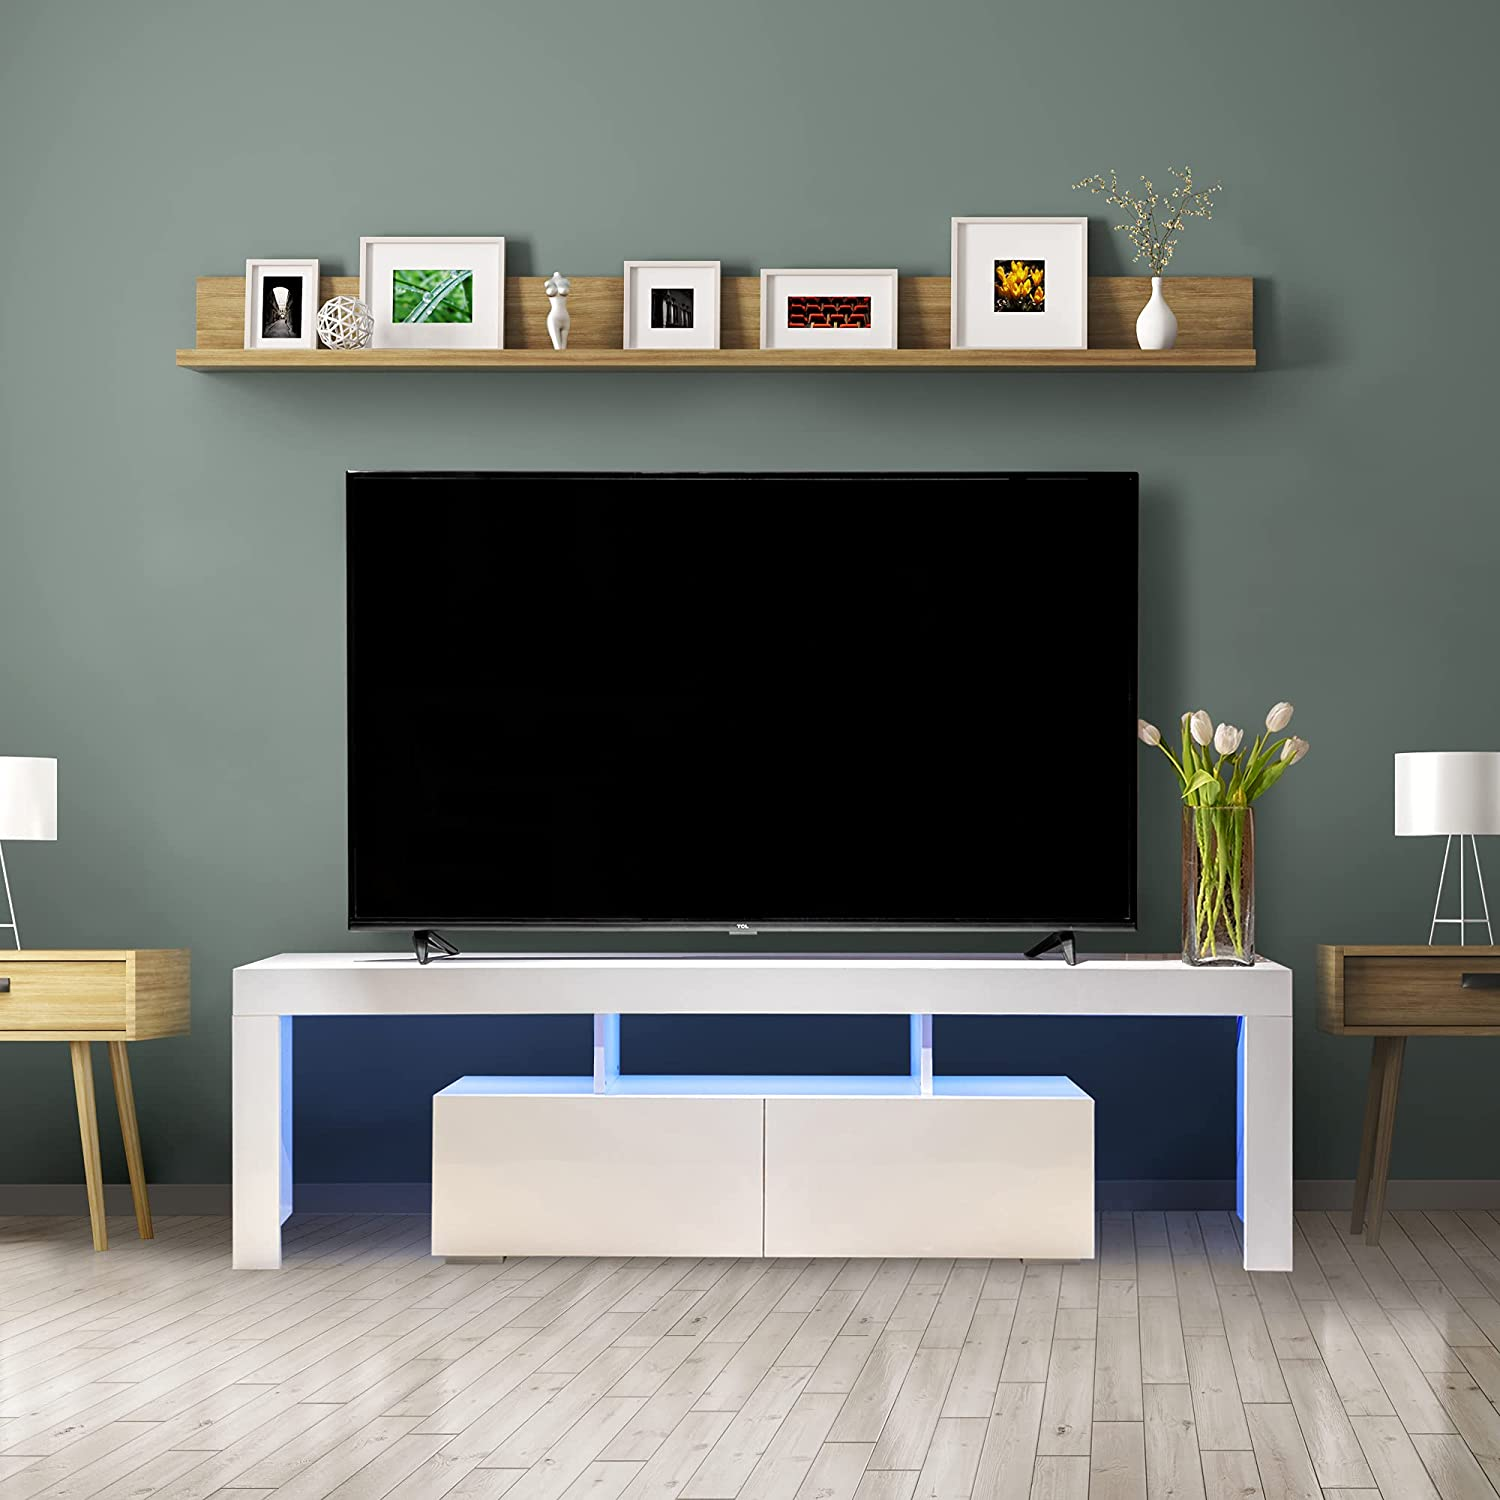 HOMVENT Led 5 popular Tv Stand TV fo Entertainment Center Inventory cleanup selling sale Cabinet